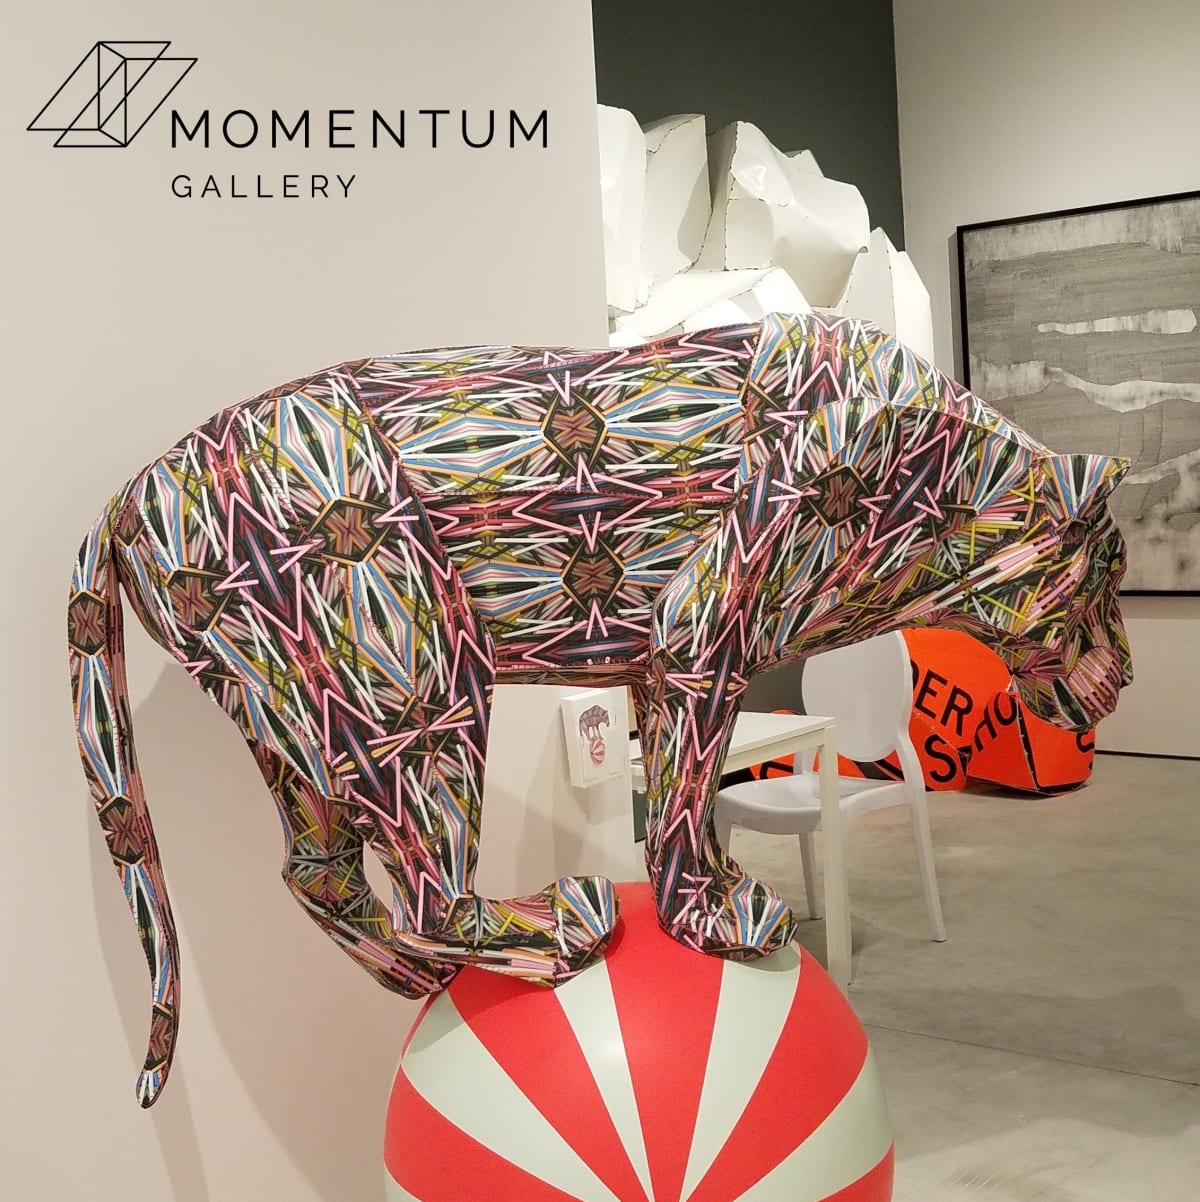 Momentum Gallery at CONTEXT Miami 2018